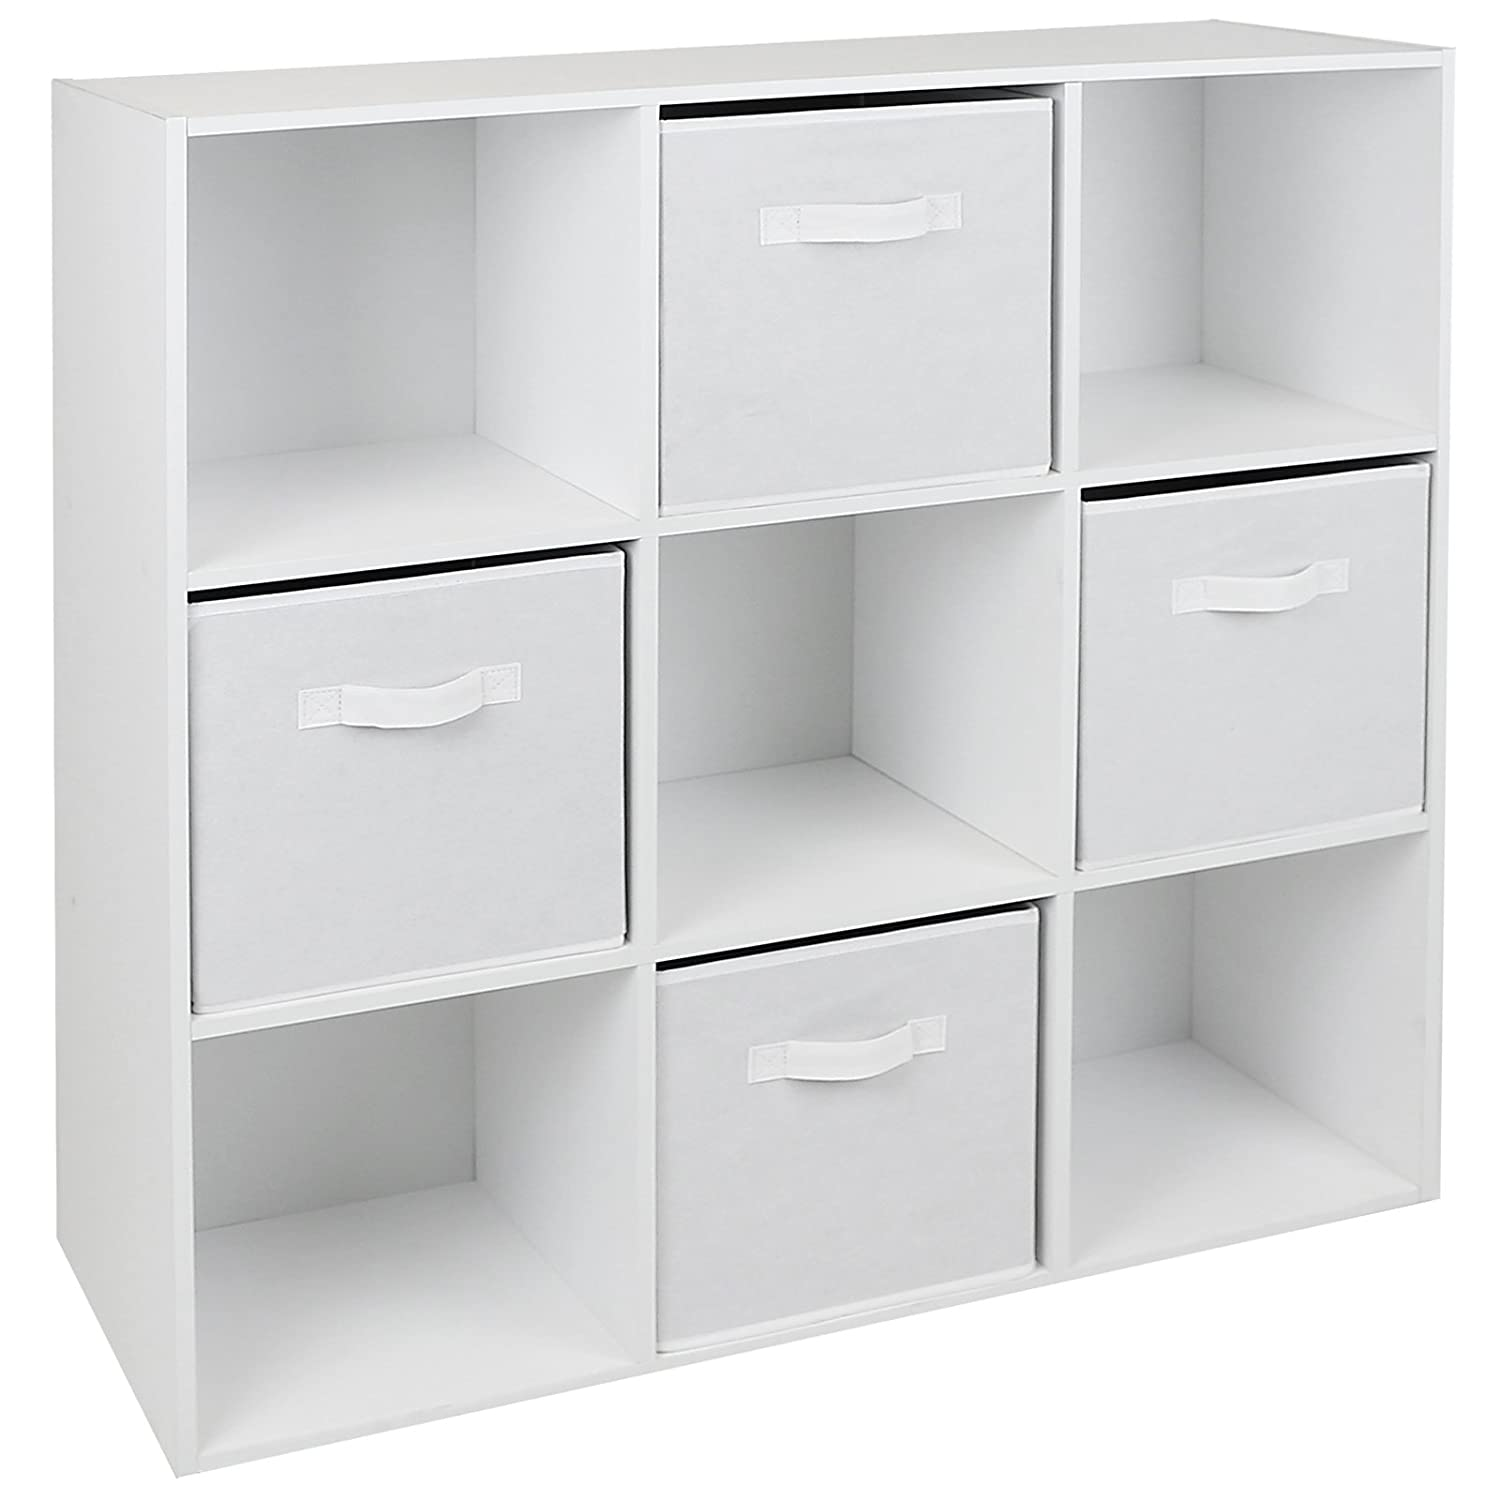 Hartleys White 9 Cube Unit & 4 White Storage Drawers Amazon